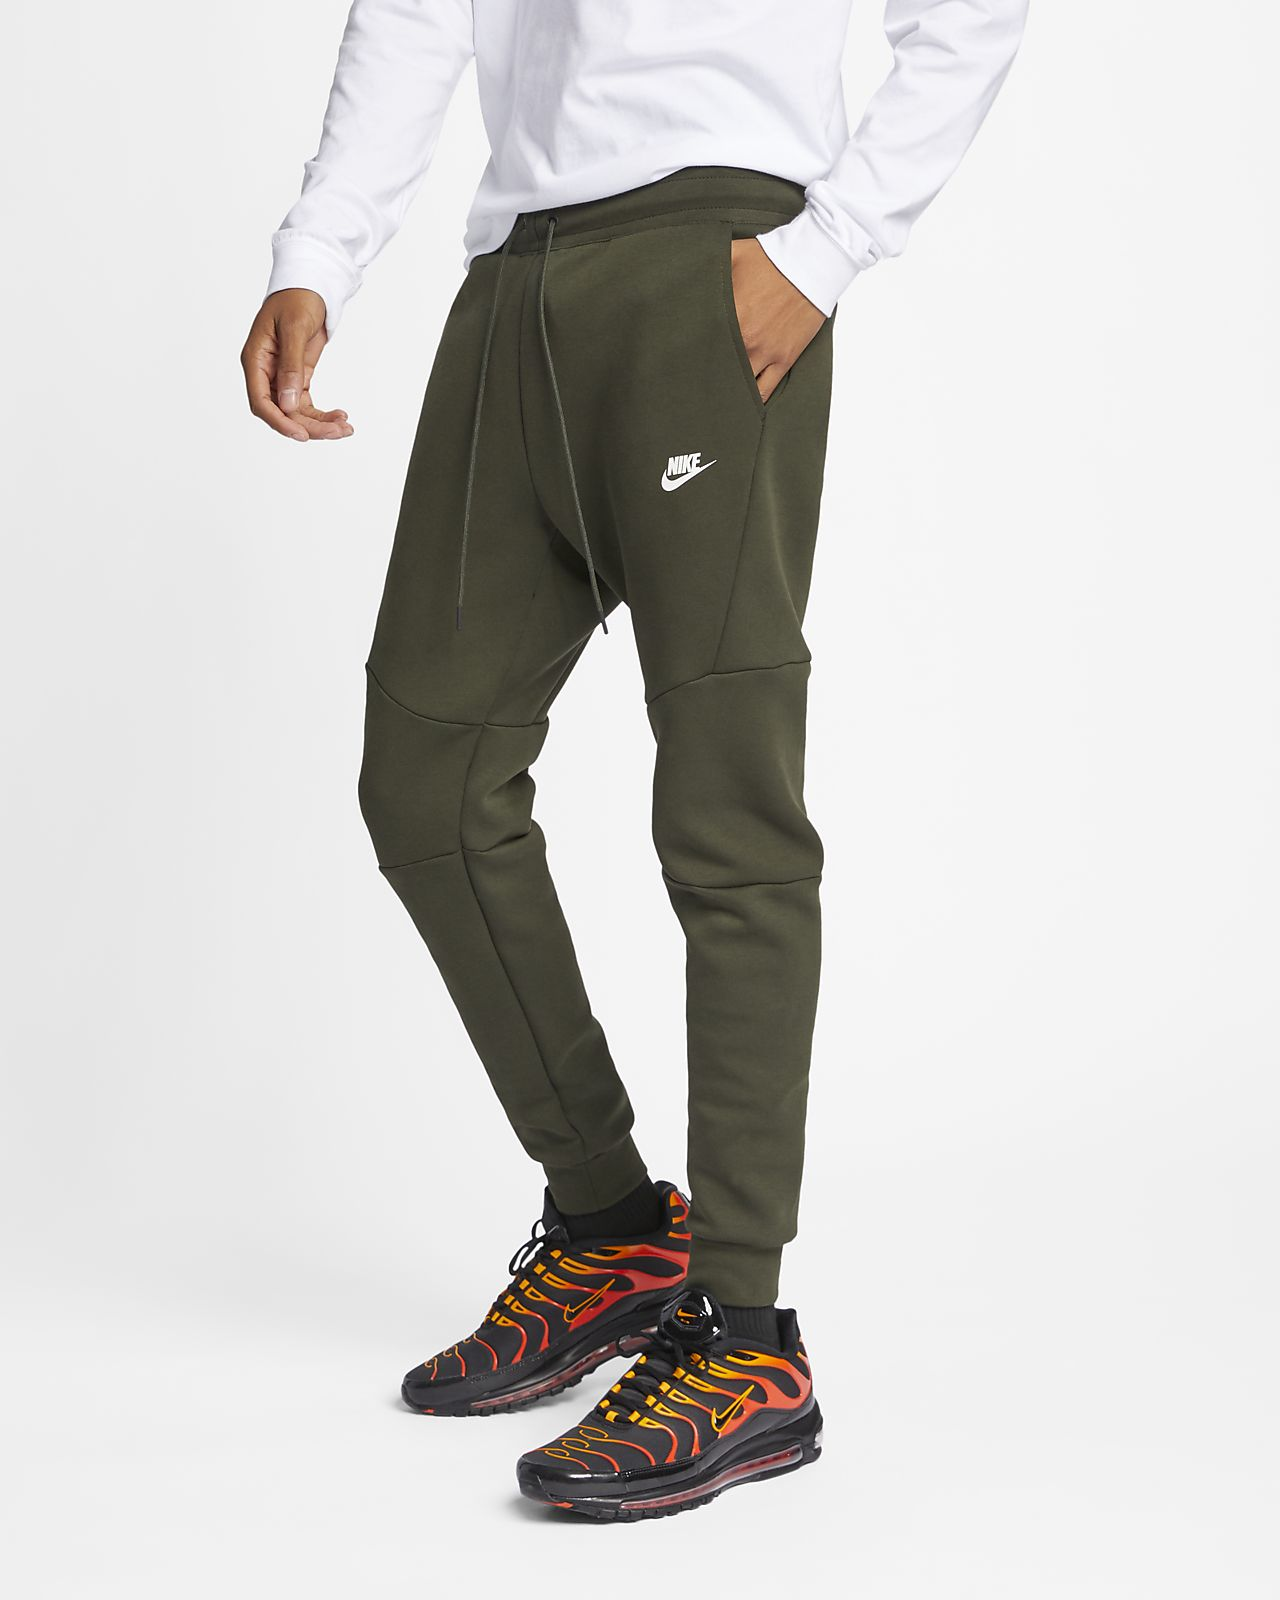 Jogging Be Tech Fleece Homme De Pour Nike Sportswear Pantalon 815Aw5